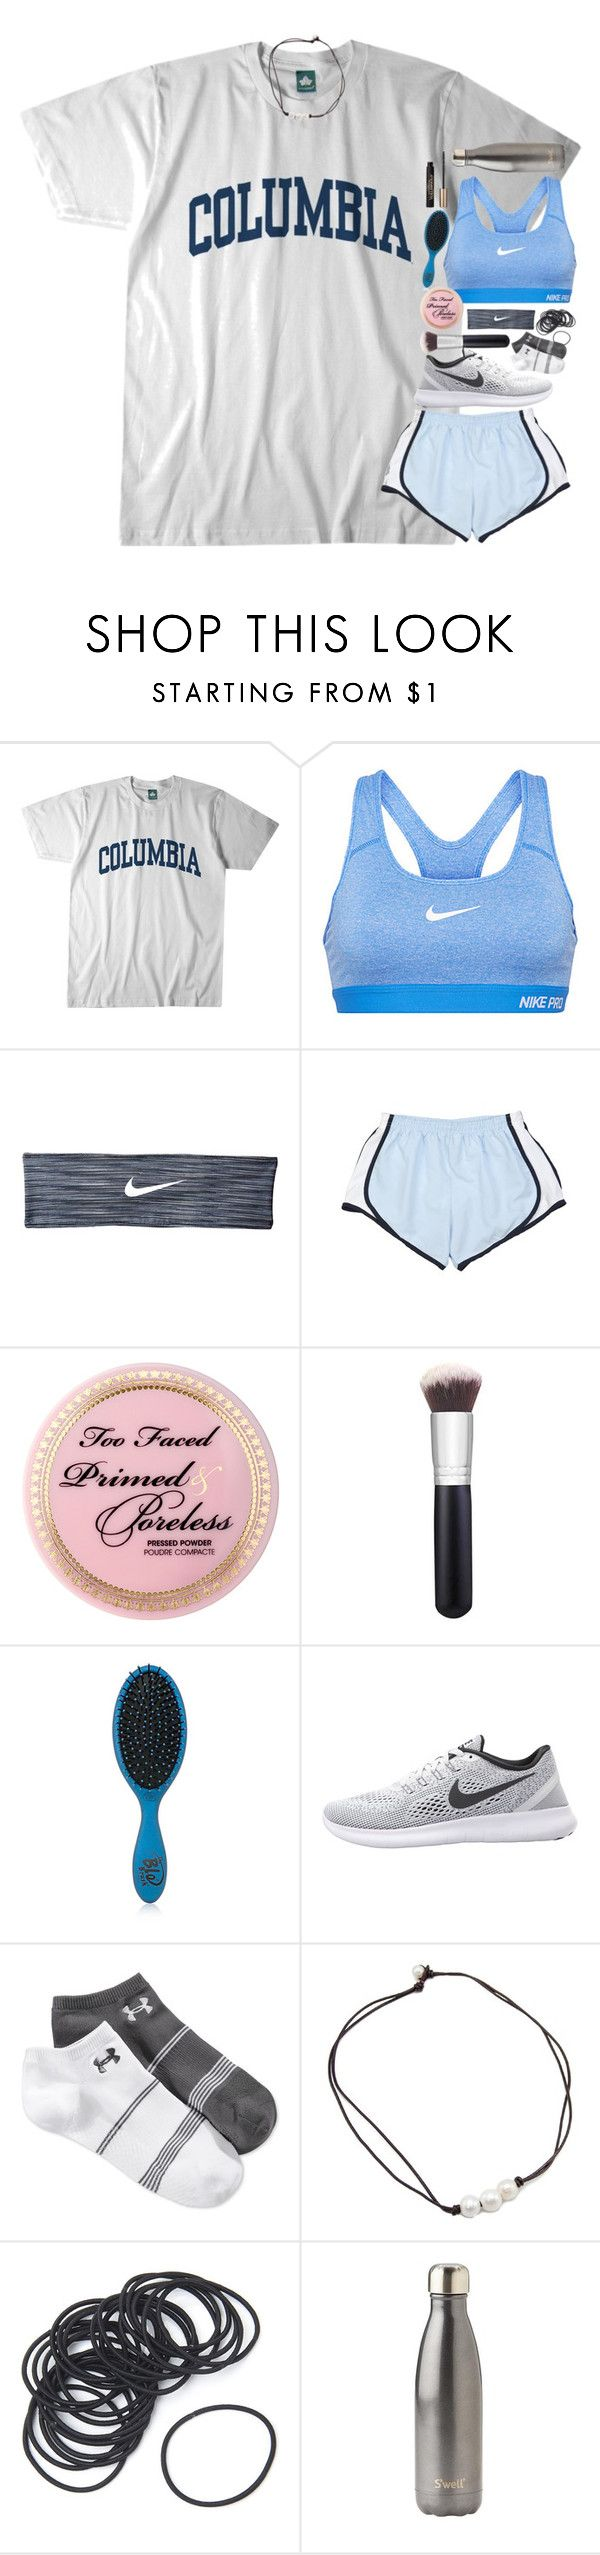 """day 3// athletics!!"" by sdyerrtx ❤ liked on Polyvore featuring Columbia, NIKE, Too Faced Cosmetics, Morphe, The Wet Brush, Under Armour, S'well, L'Oréal Paris and katesbtsb2k16"